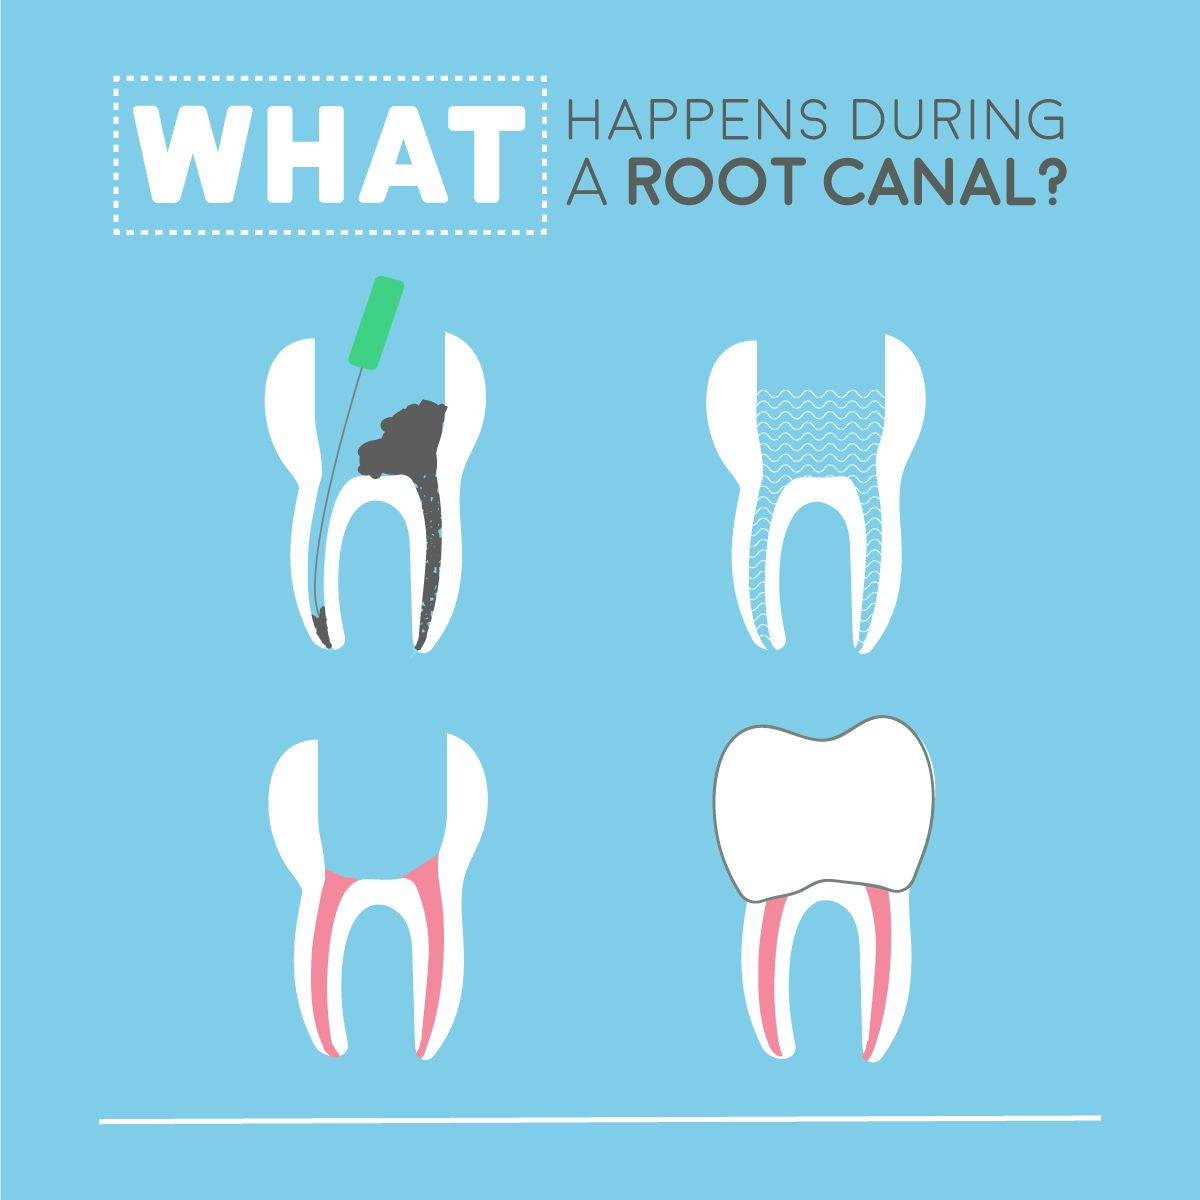 The steps of a root canal are easy to understand remove